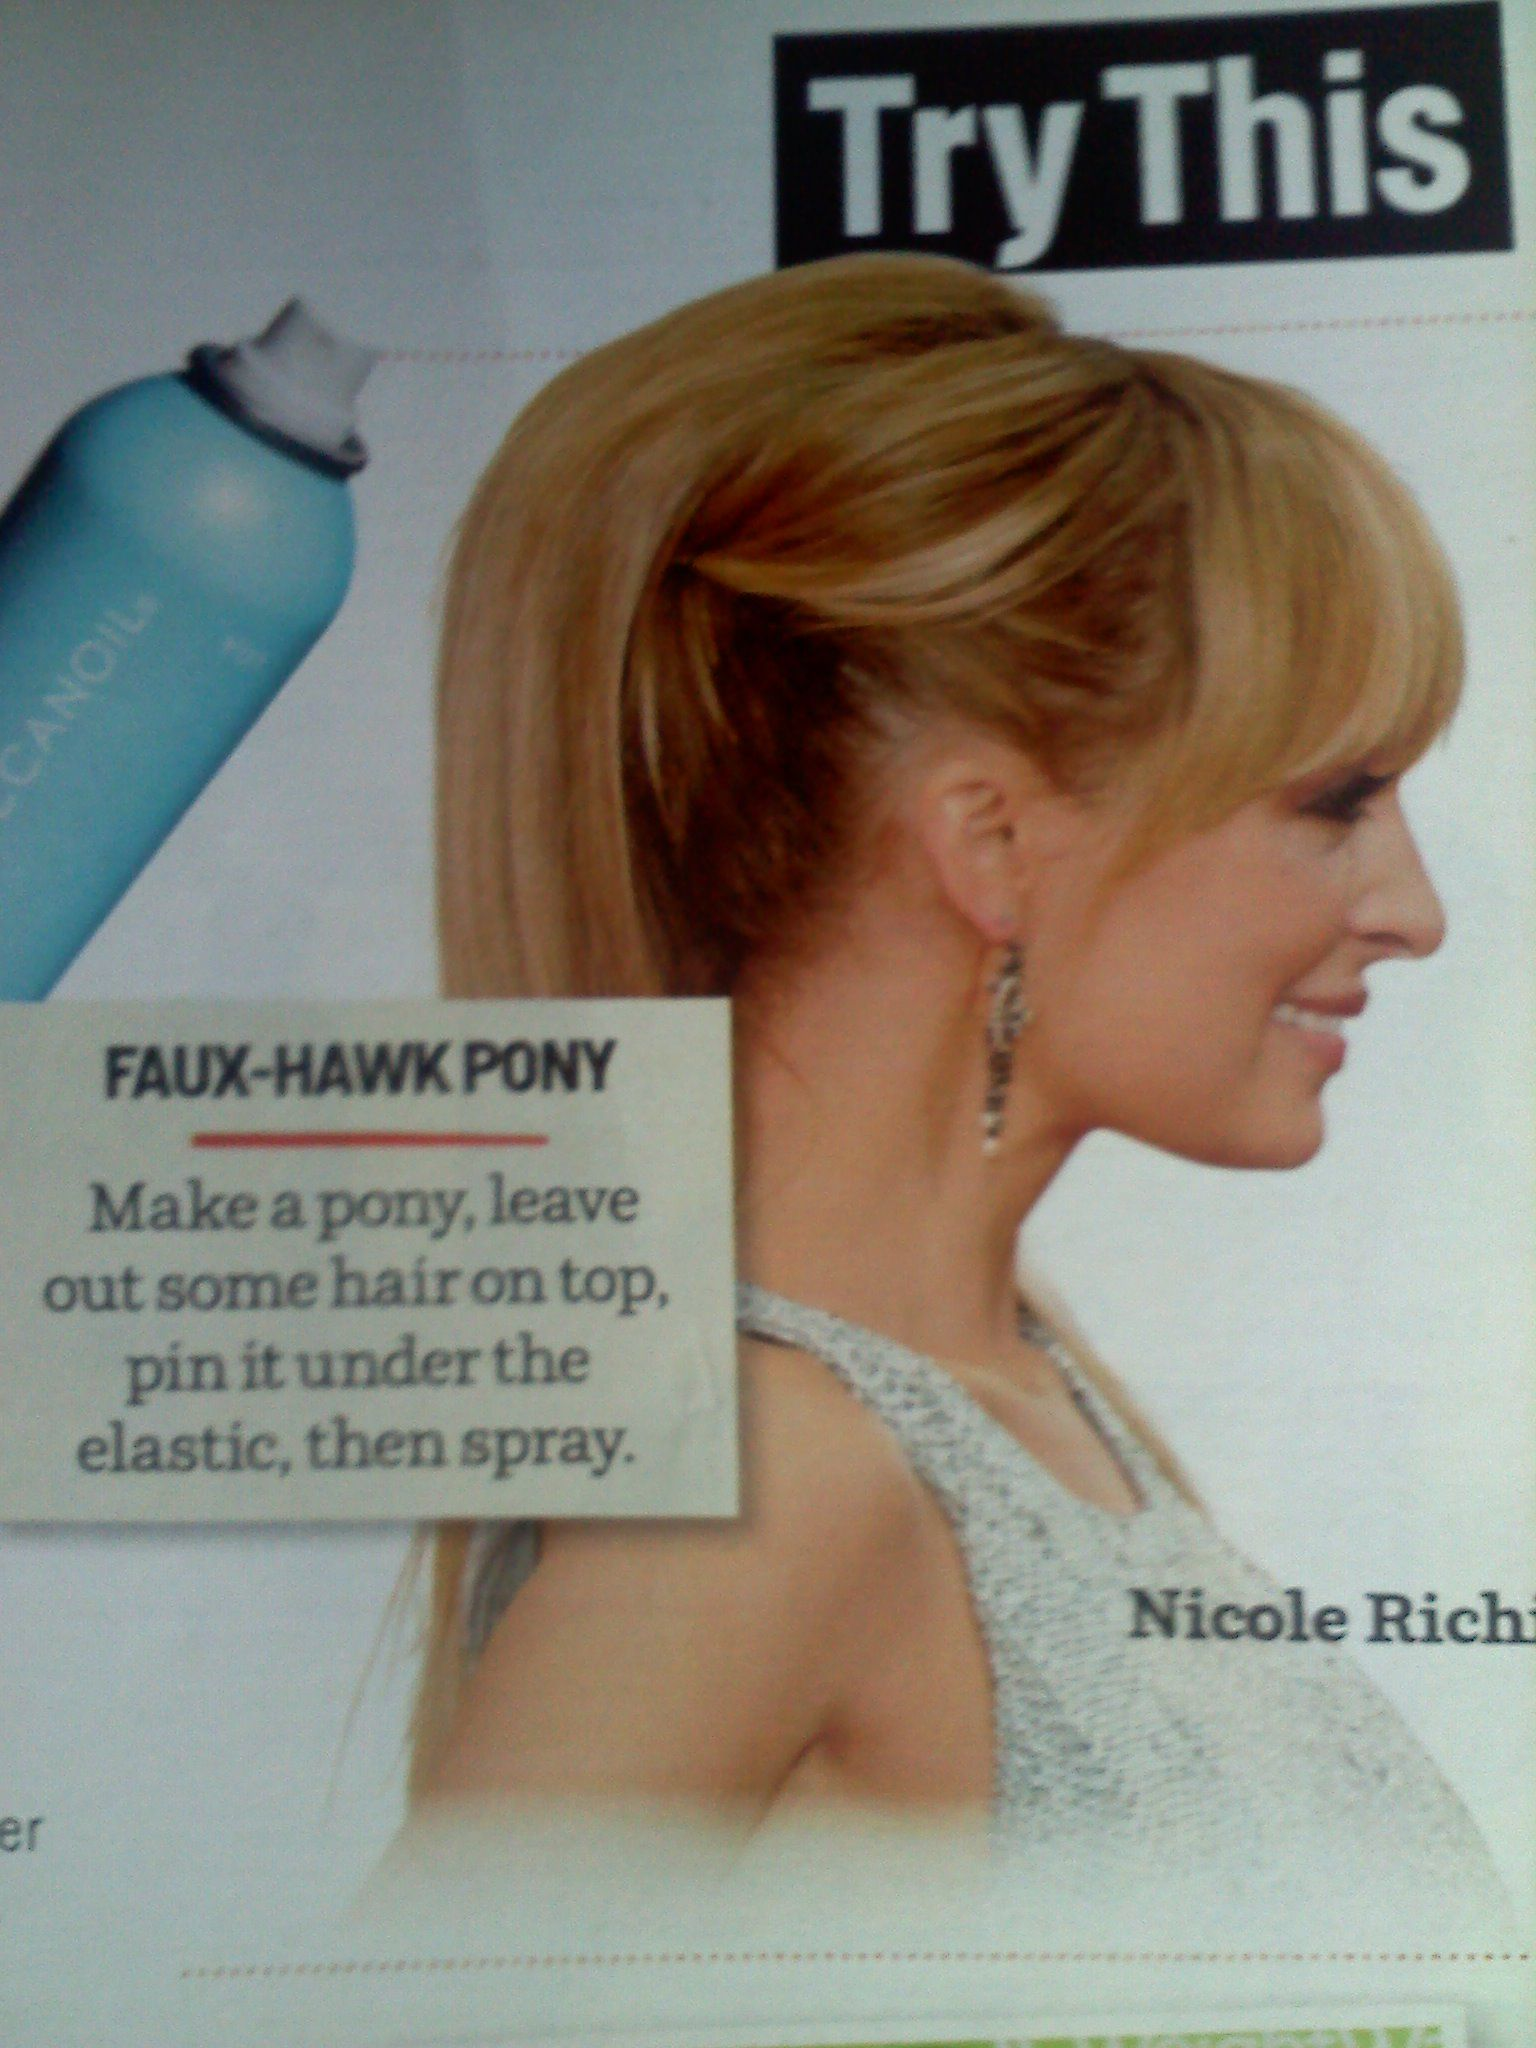 Faux-hawk pony I saw in a past Cosmopolitan magazine #NicoleRichie #hair